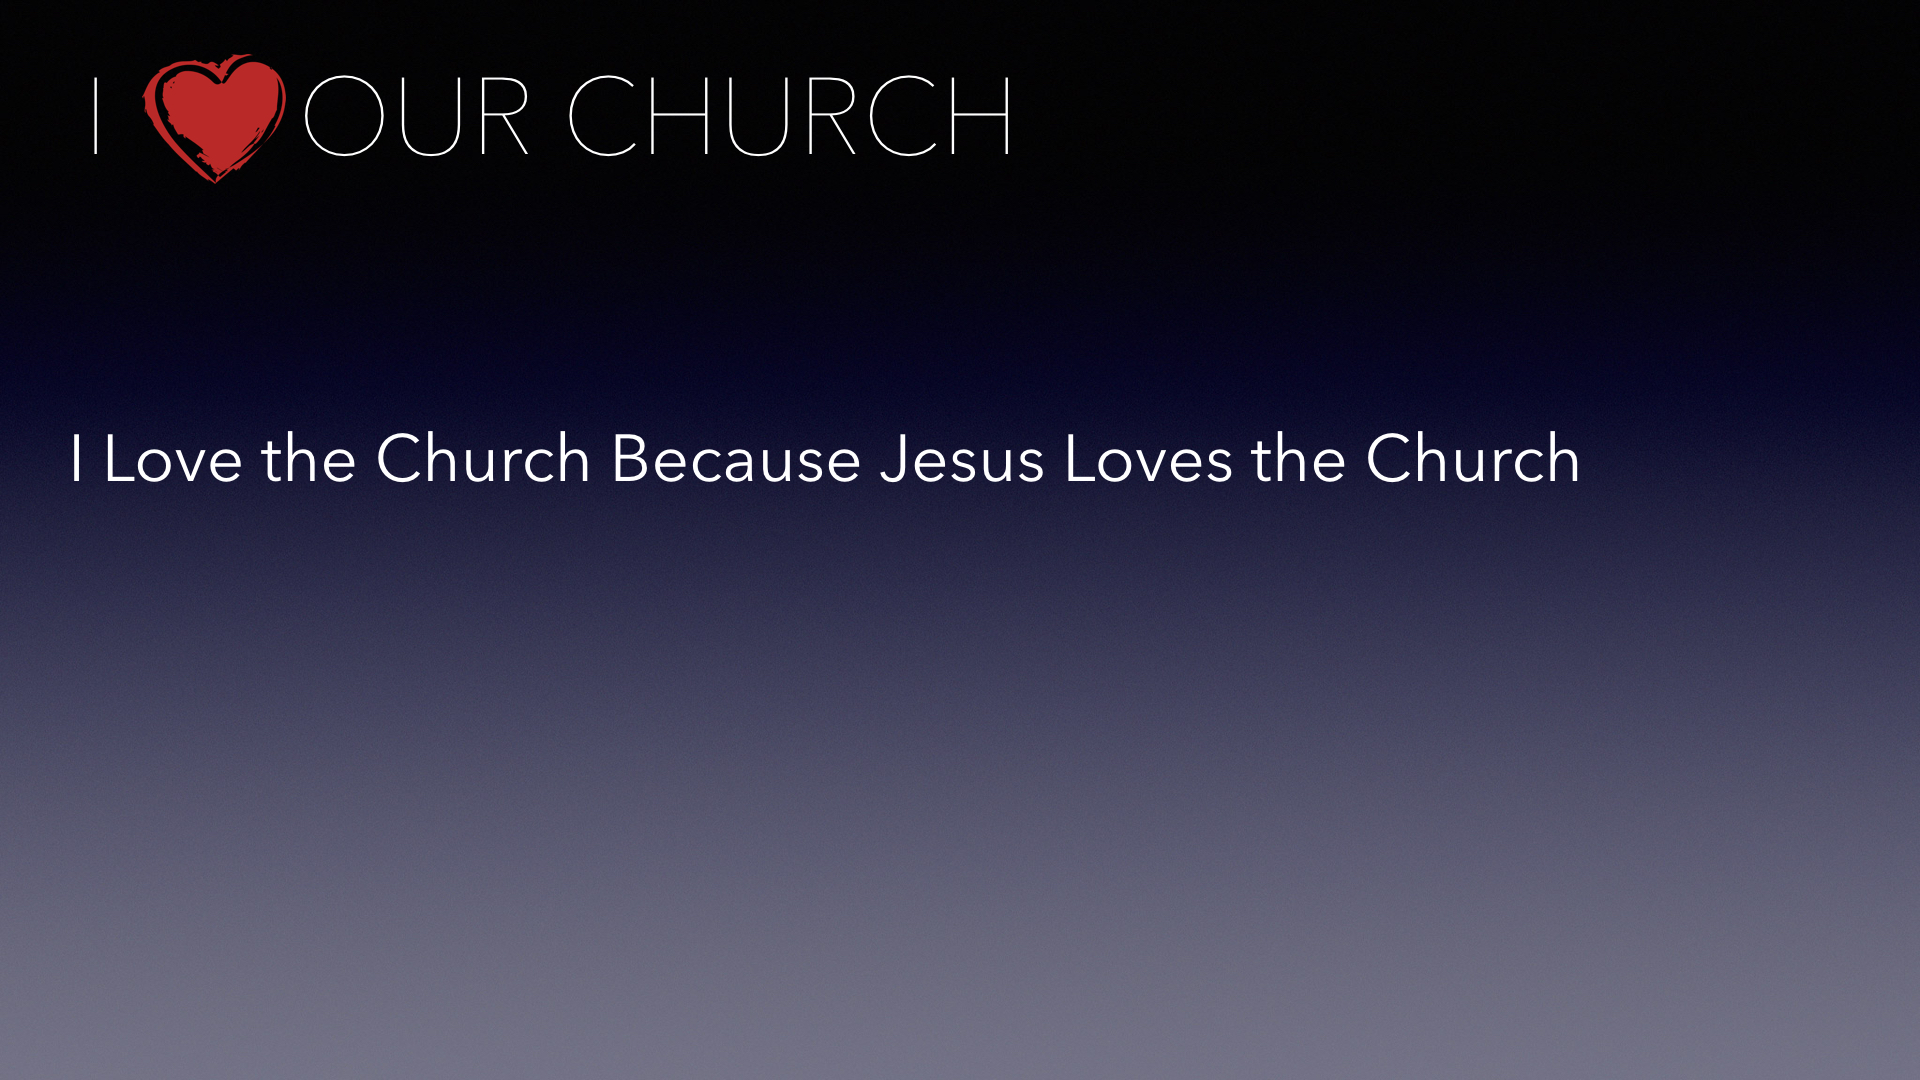 i-love-our-church-004